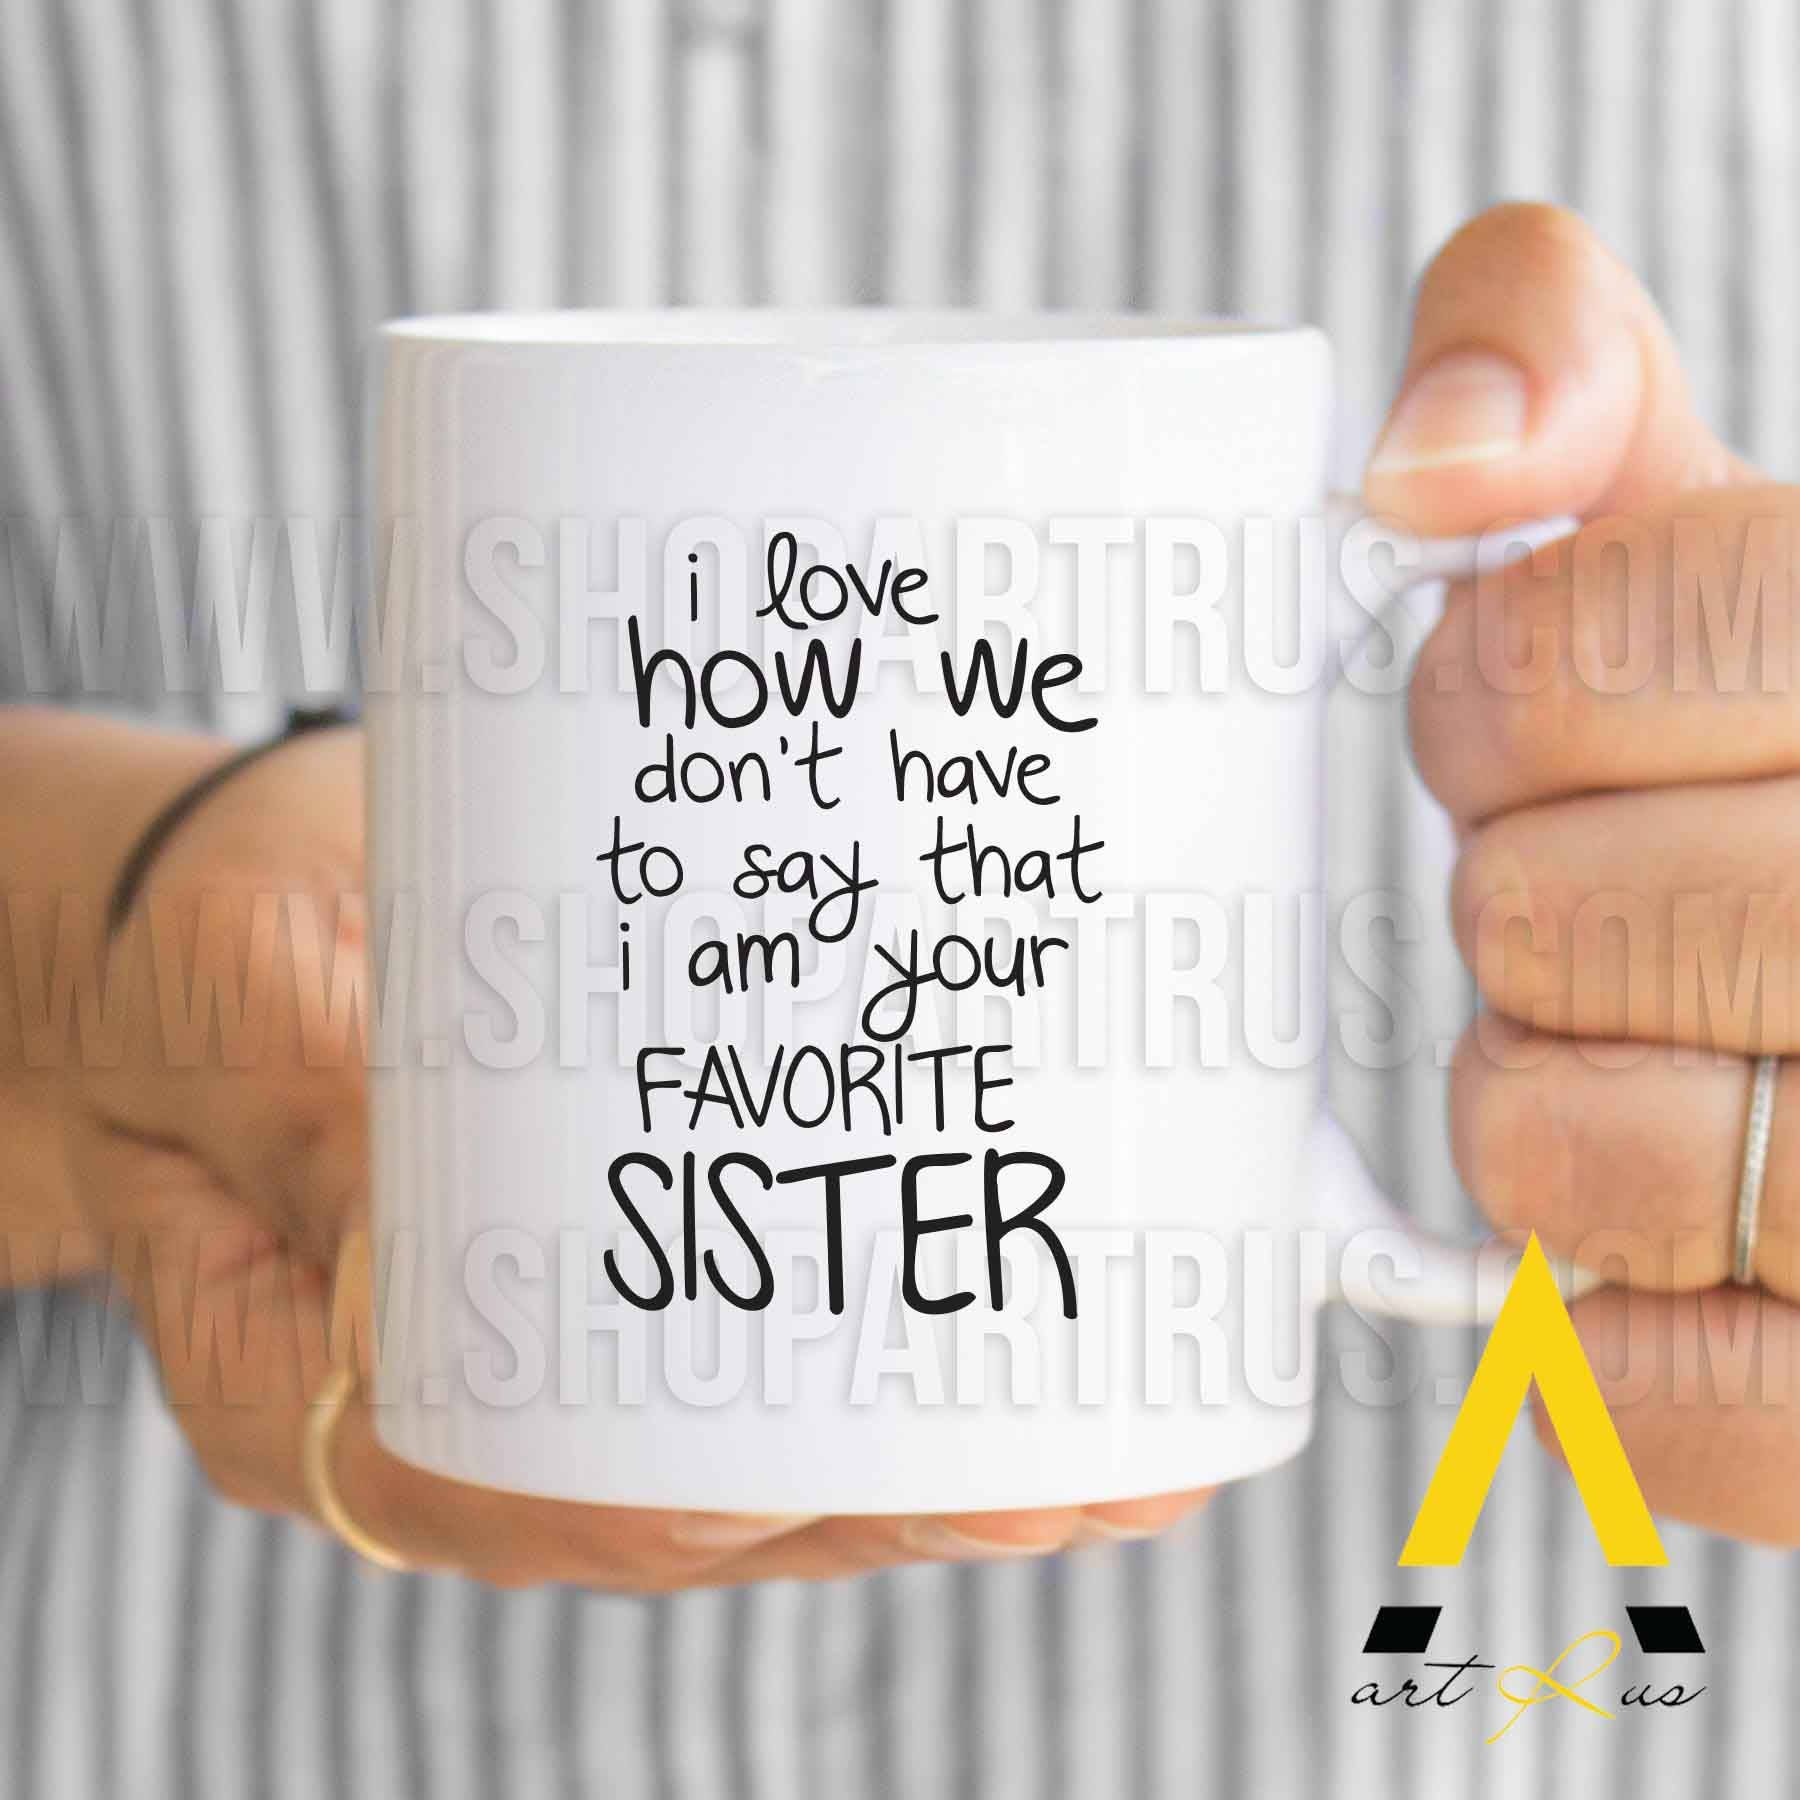 Christmas Gift Gifts For Sister Favorite Funny Coffee Mug Birthday Wedding And Brother MU673 By ArtRuss On Etsy